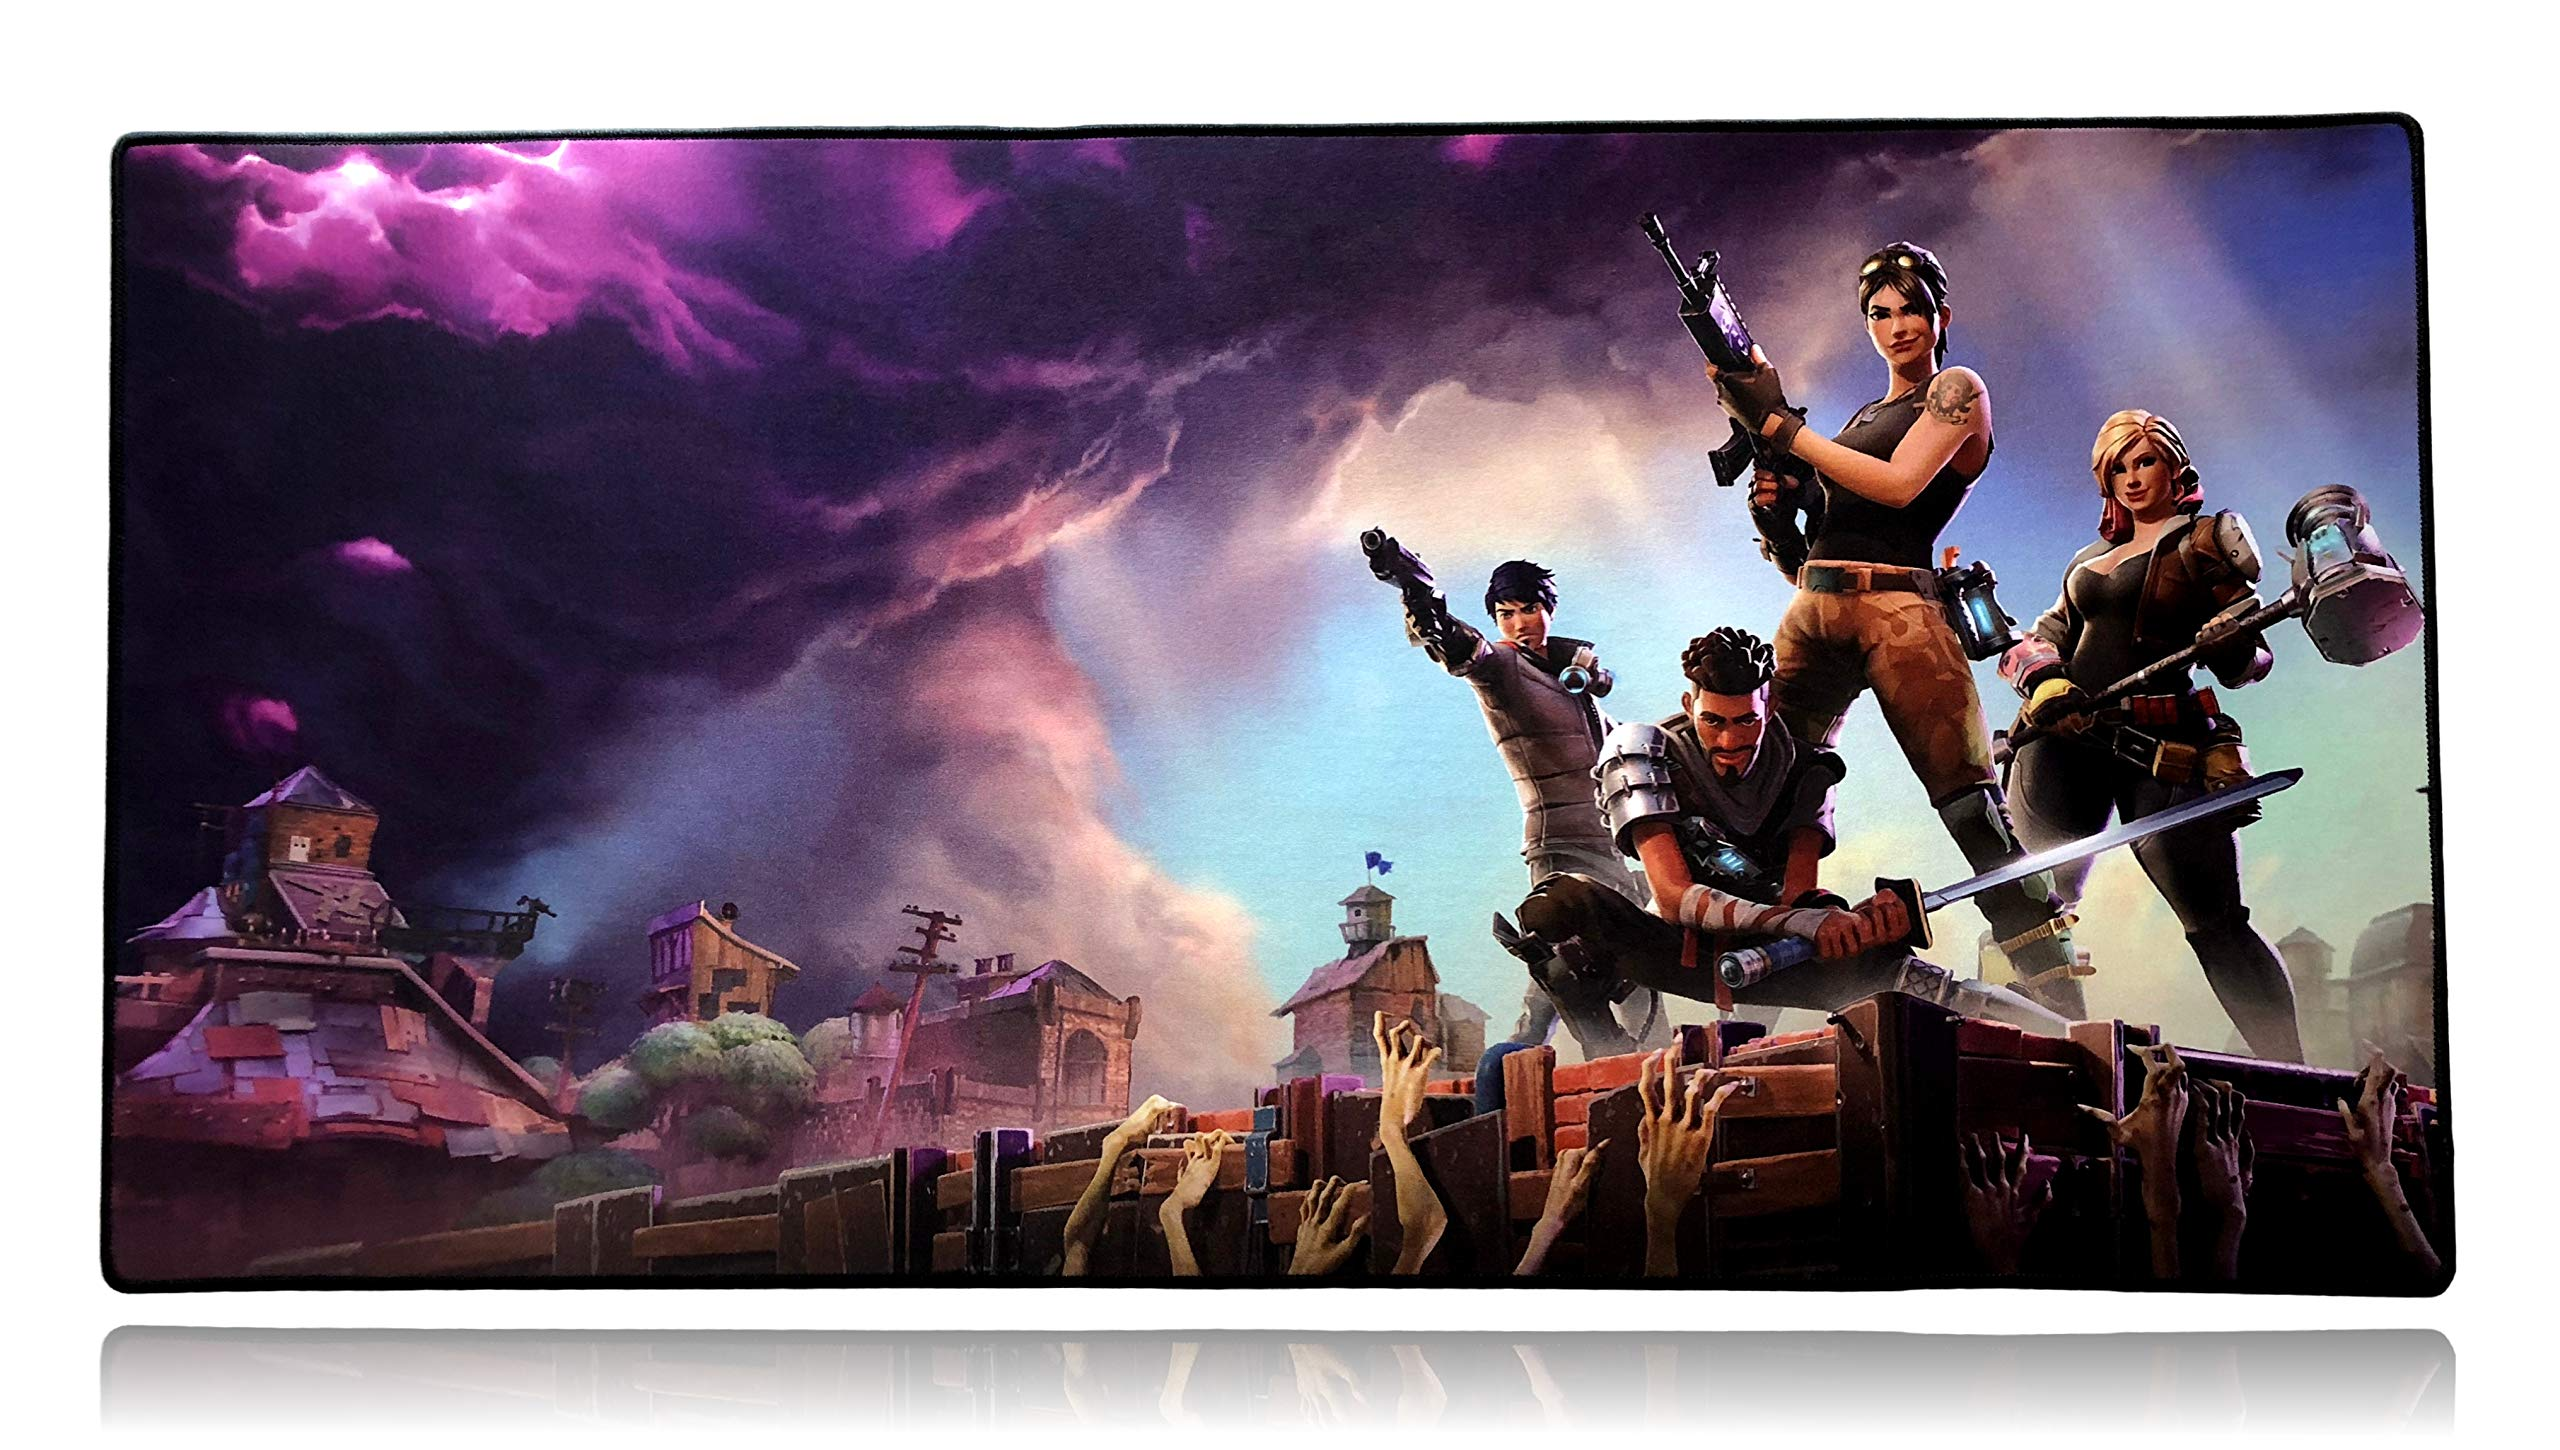 Fortnite Extended Plus Size Custom Professional Gaming Mouse Pad - Anti Slip Rubber Base - Stitched Edges - Large Desk Mat - 36'' x 18'' x 0.16'' (Extended Plus, Fortnite)